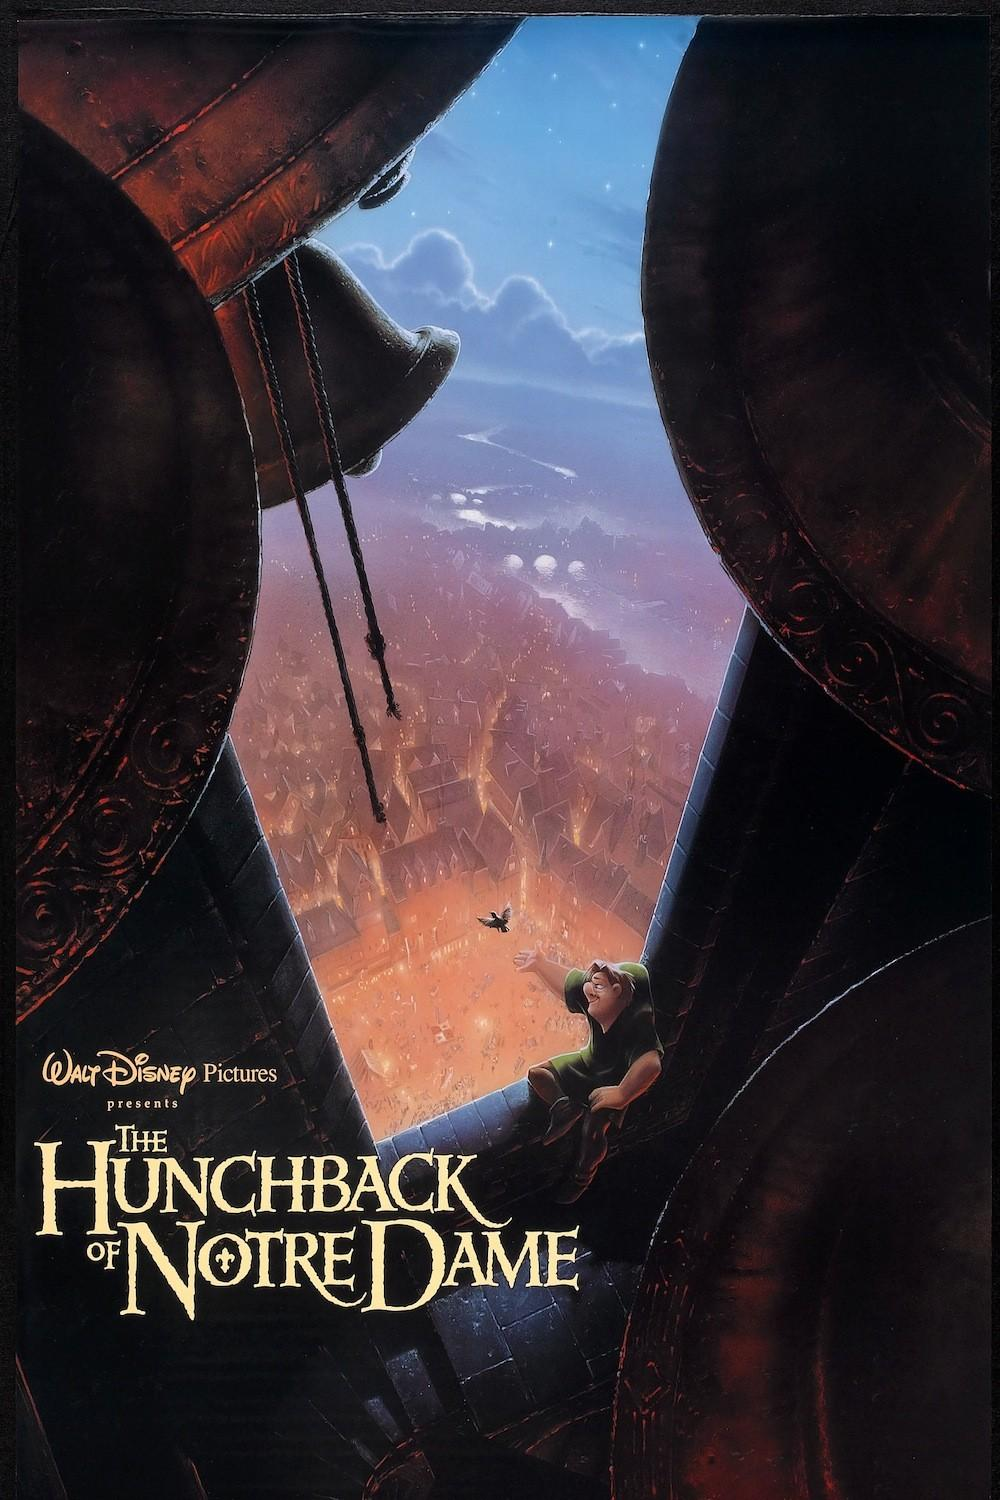 brilliantly designed posters of the Disney Renaissance The Hunchback of Notre Dame